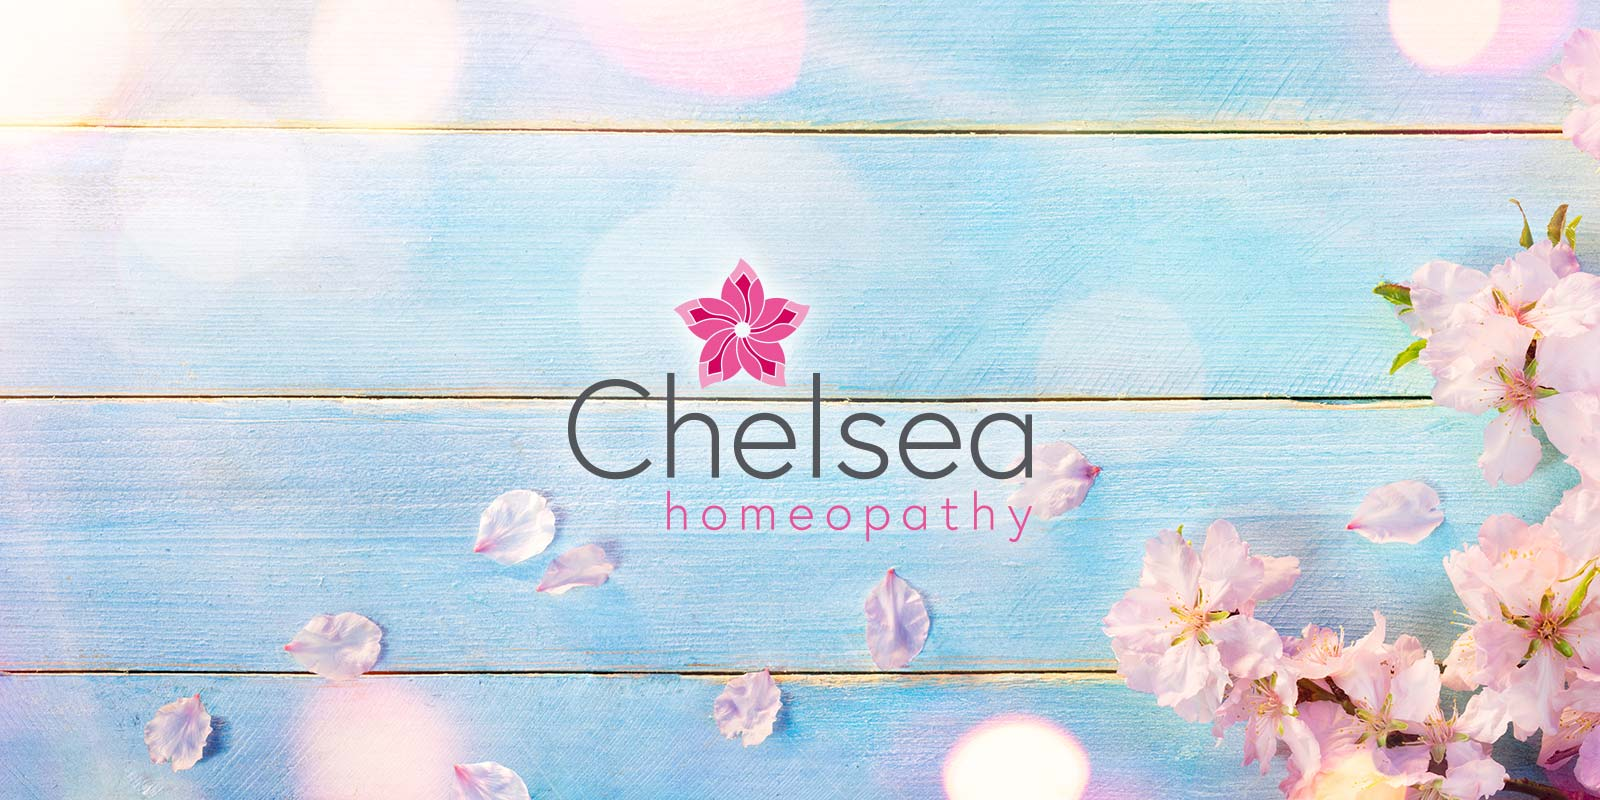 Chelsea Homeopathy Branding Project design